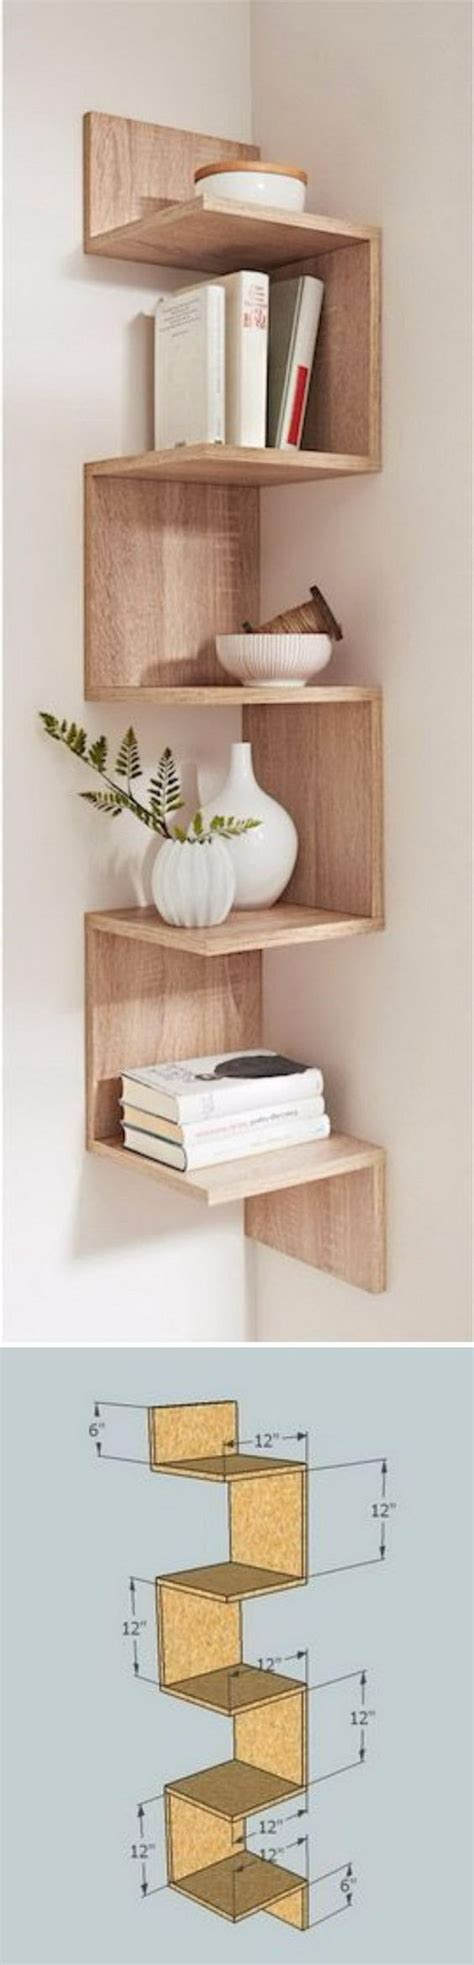 diy kitchen shelving ideas best 25 shelving ideas ideas on shelves open